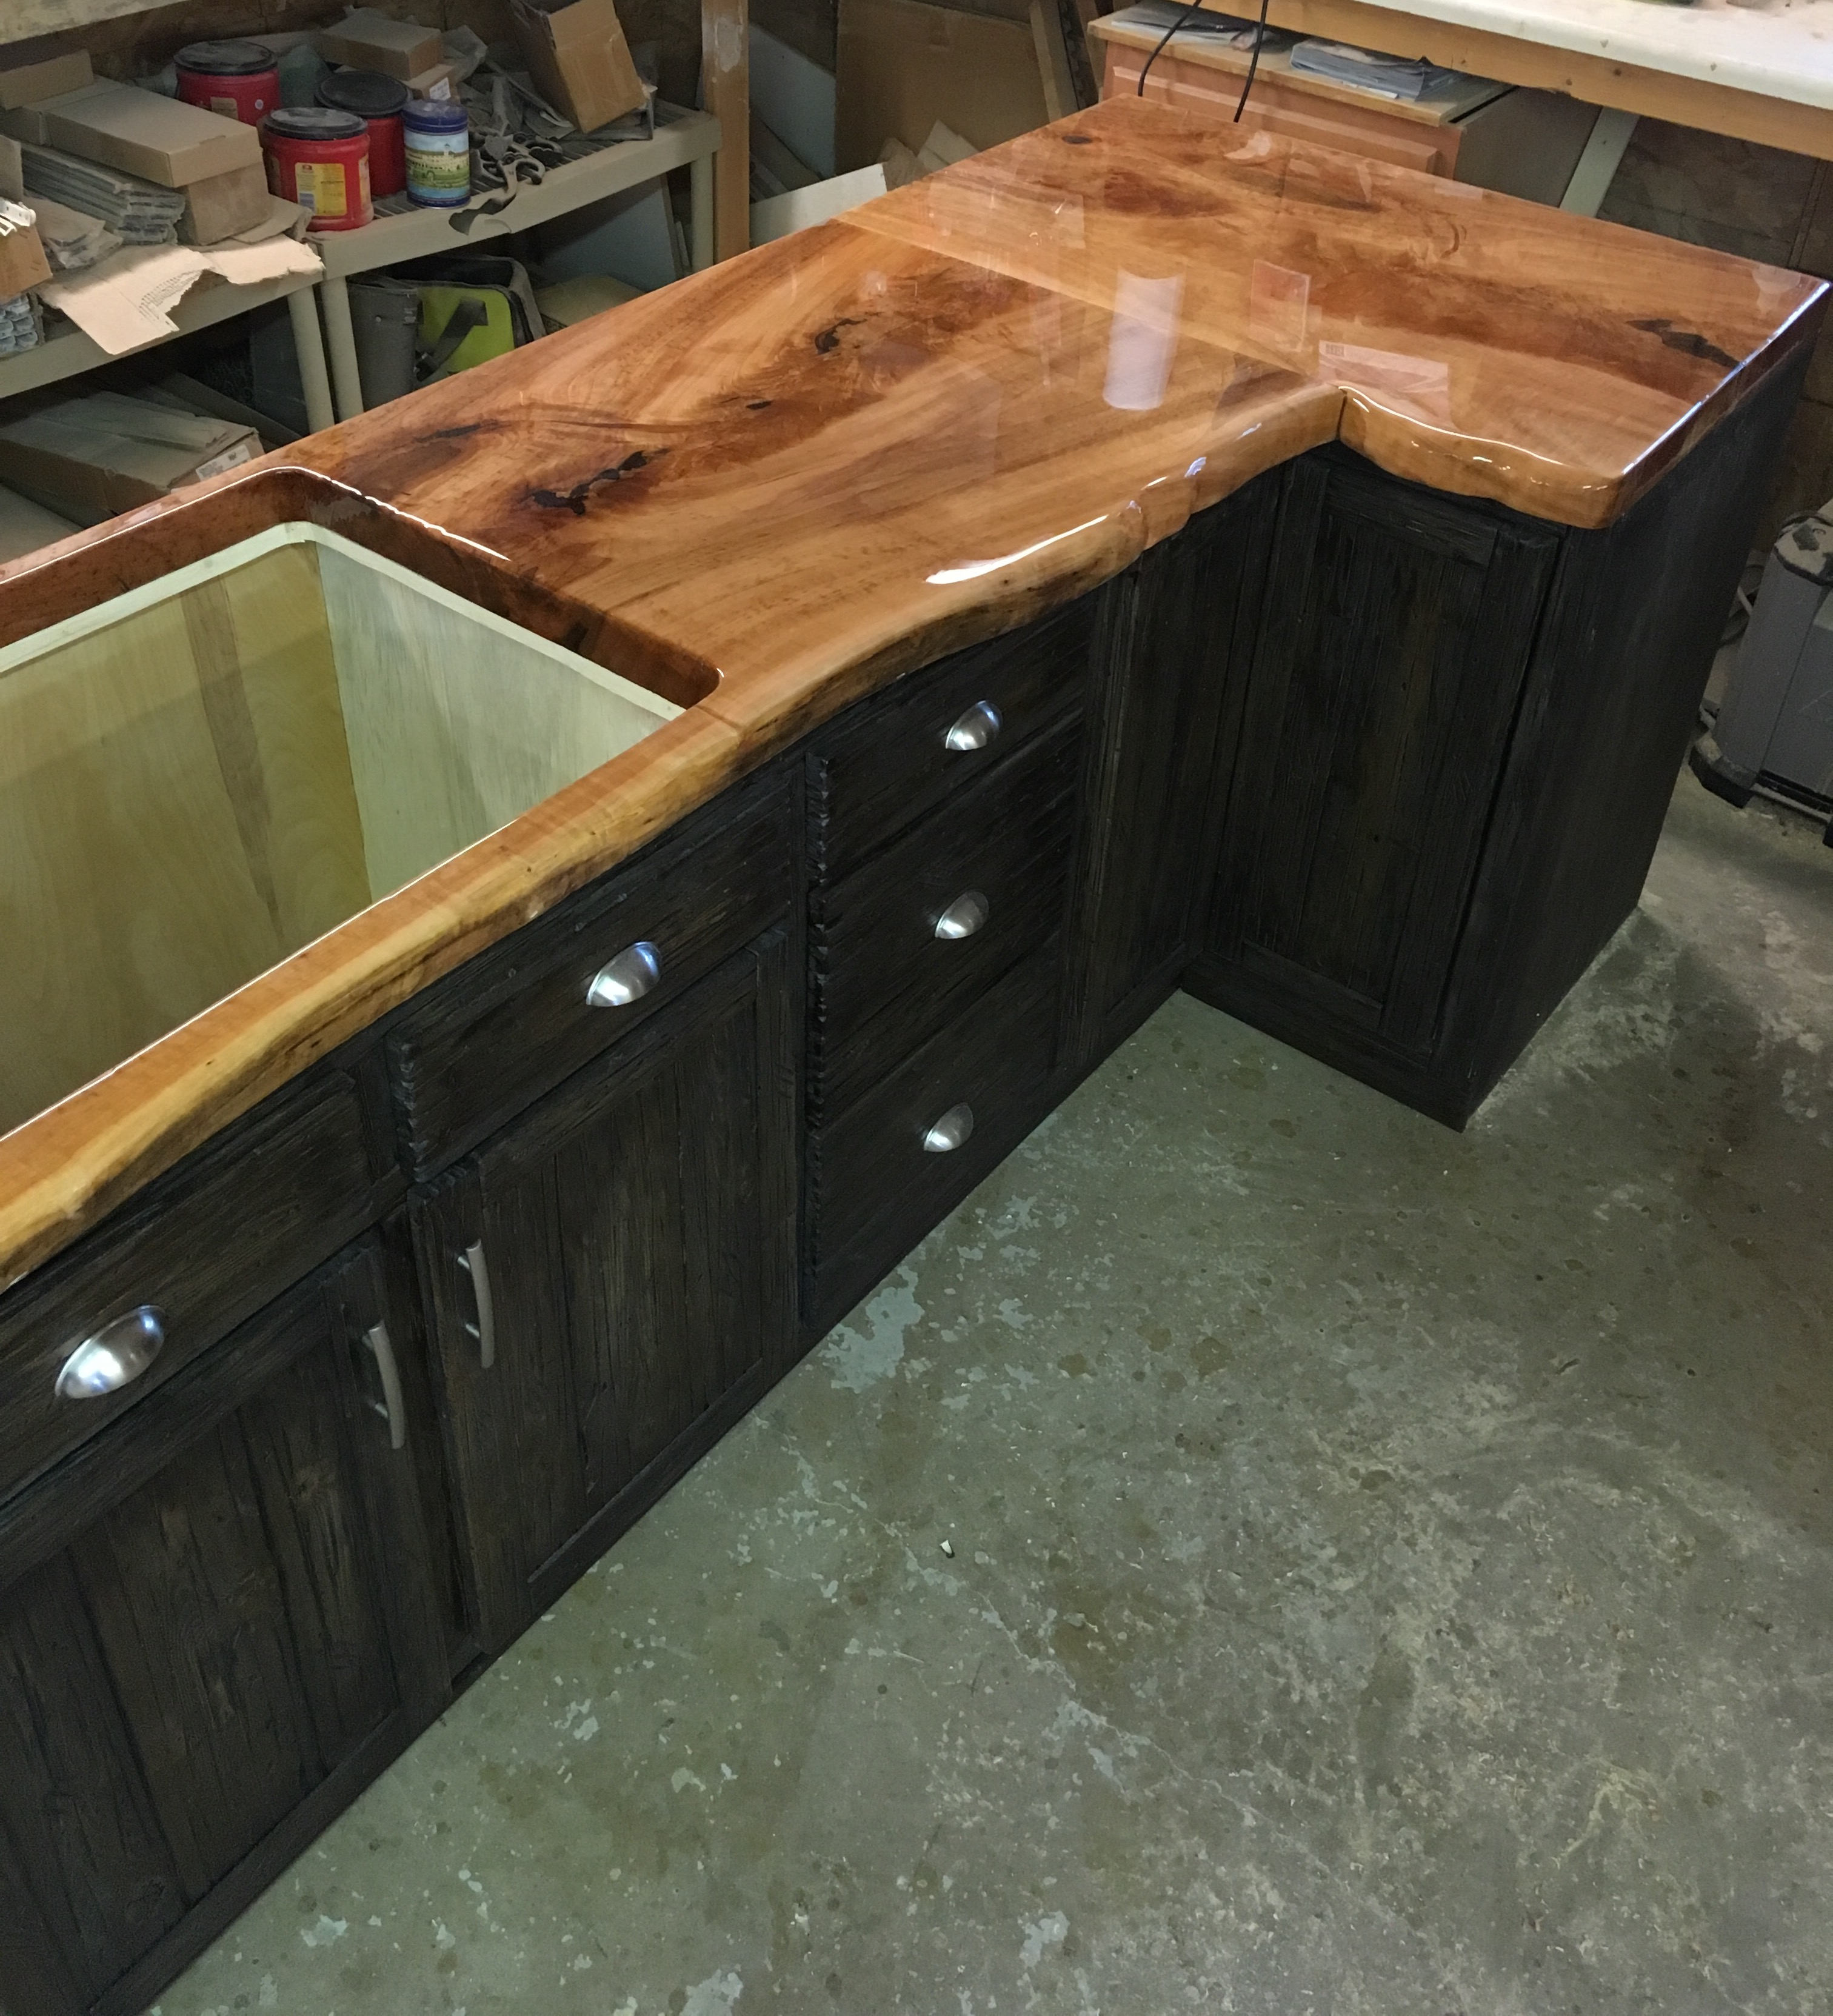 Epoxy poured countertop